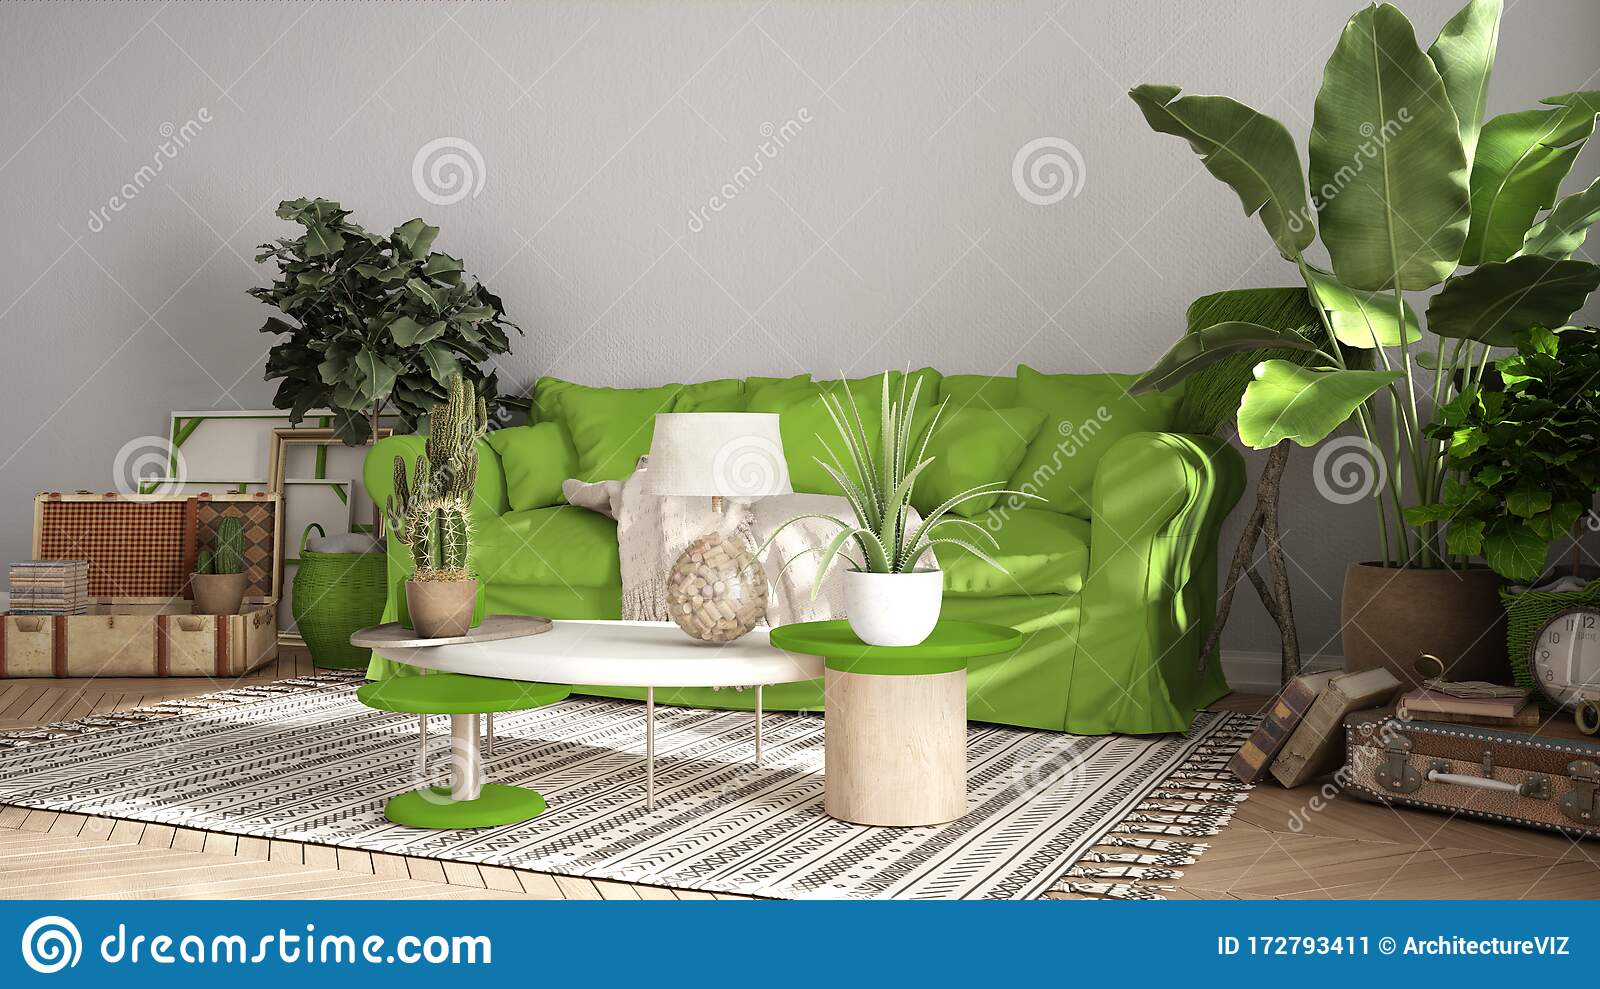 Picture of: Vintage Old Style Living Room In Green Tones Sofa Carpet And Pillows Tables With Decors And Potted Plants Carpet Window Stock Illustration Illustration Of Indoor Design 172793411